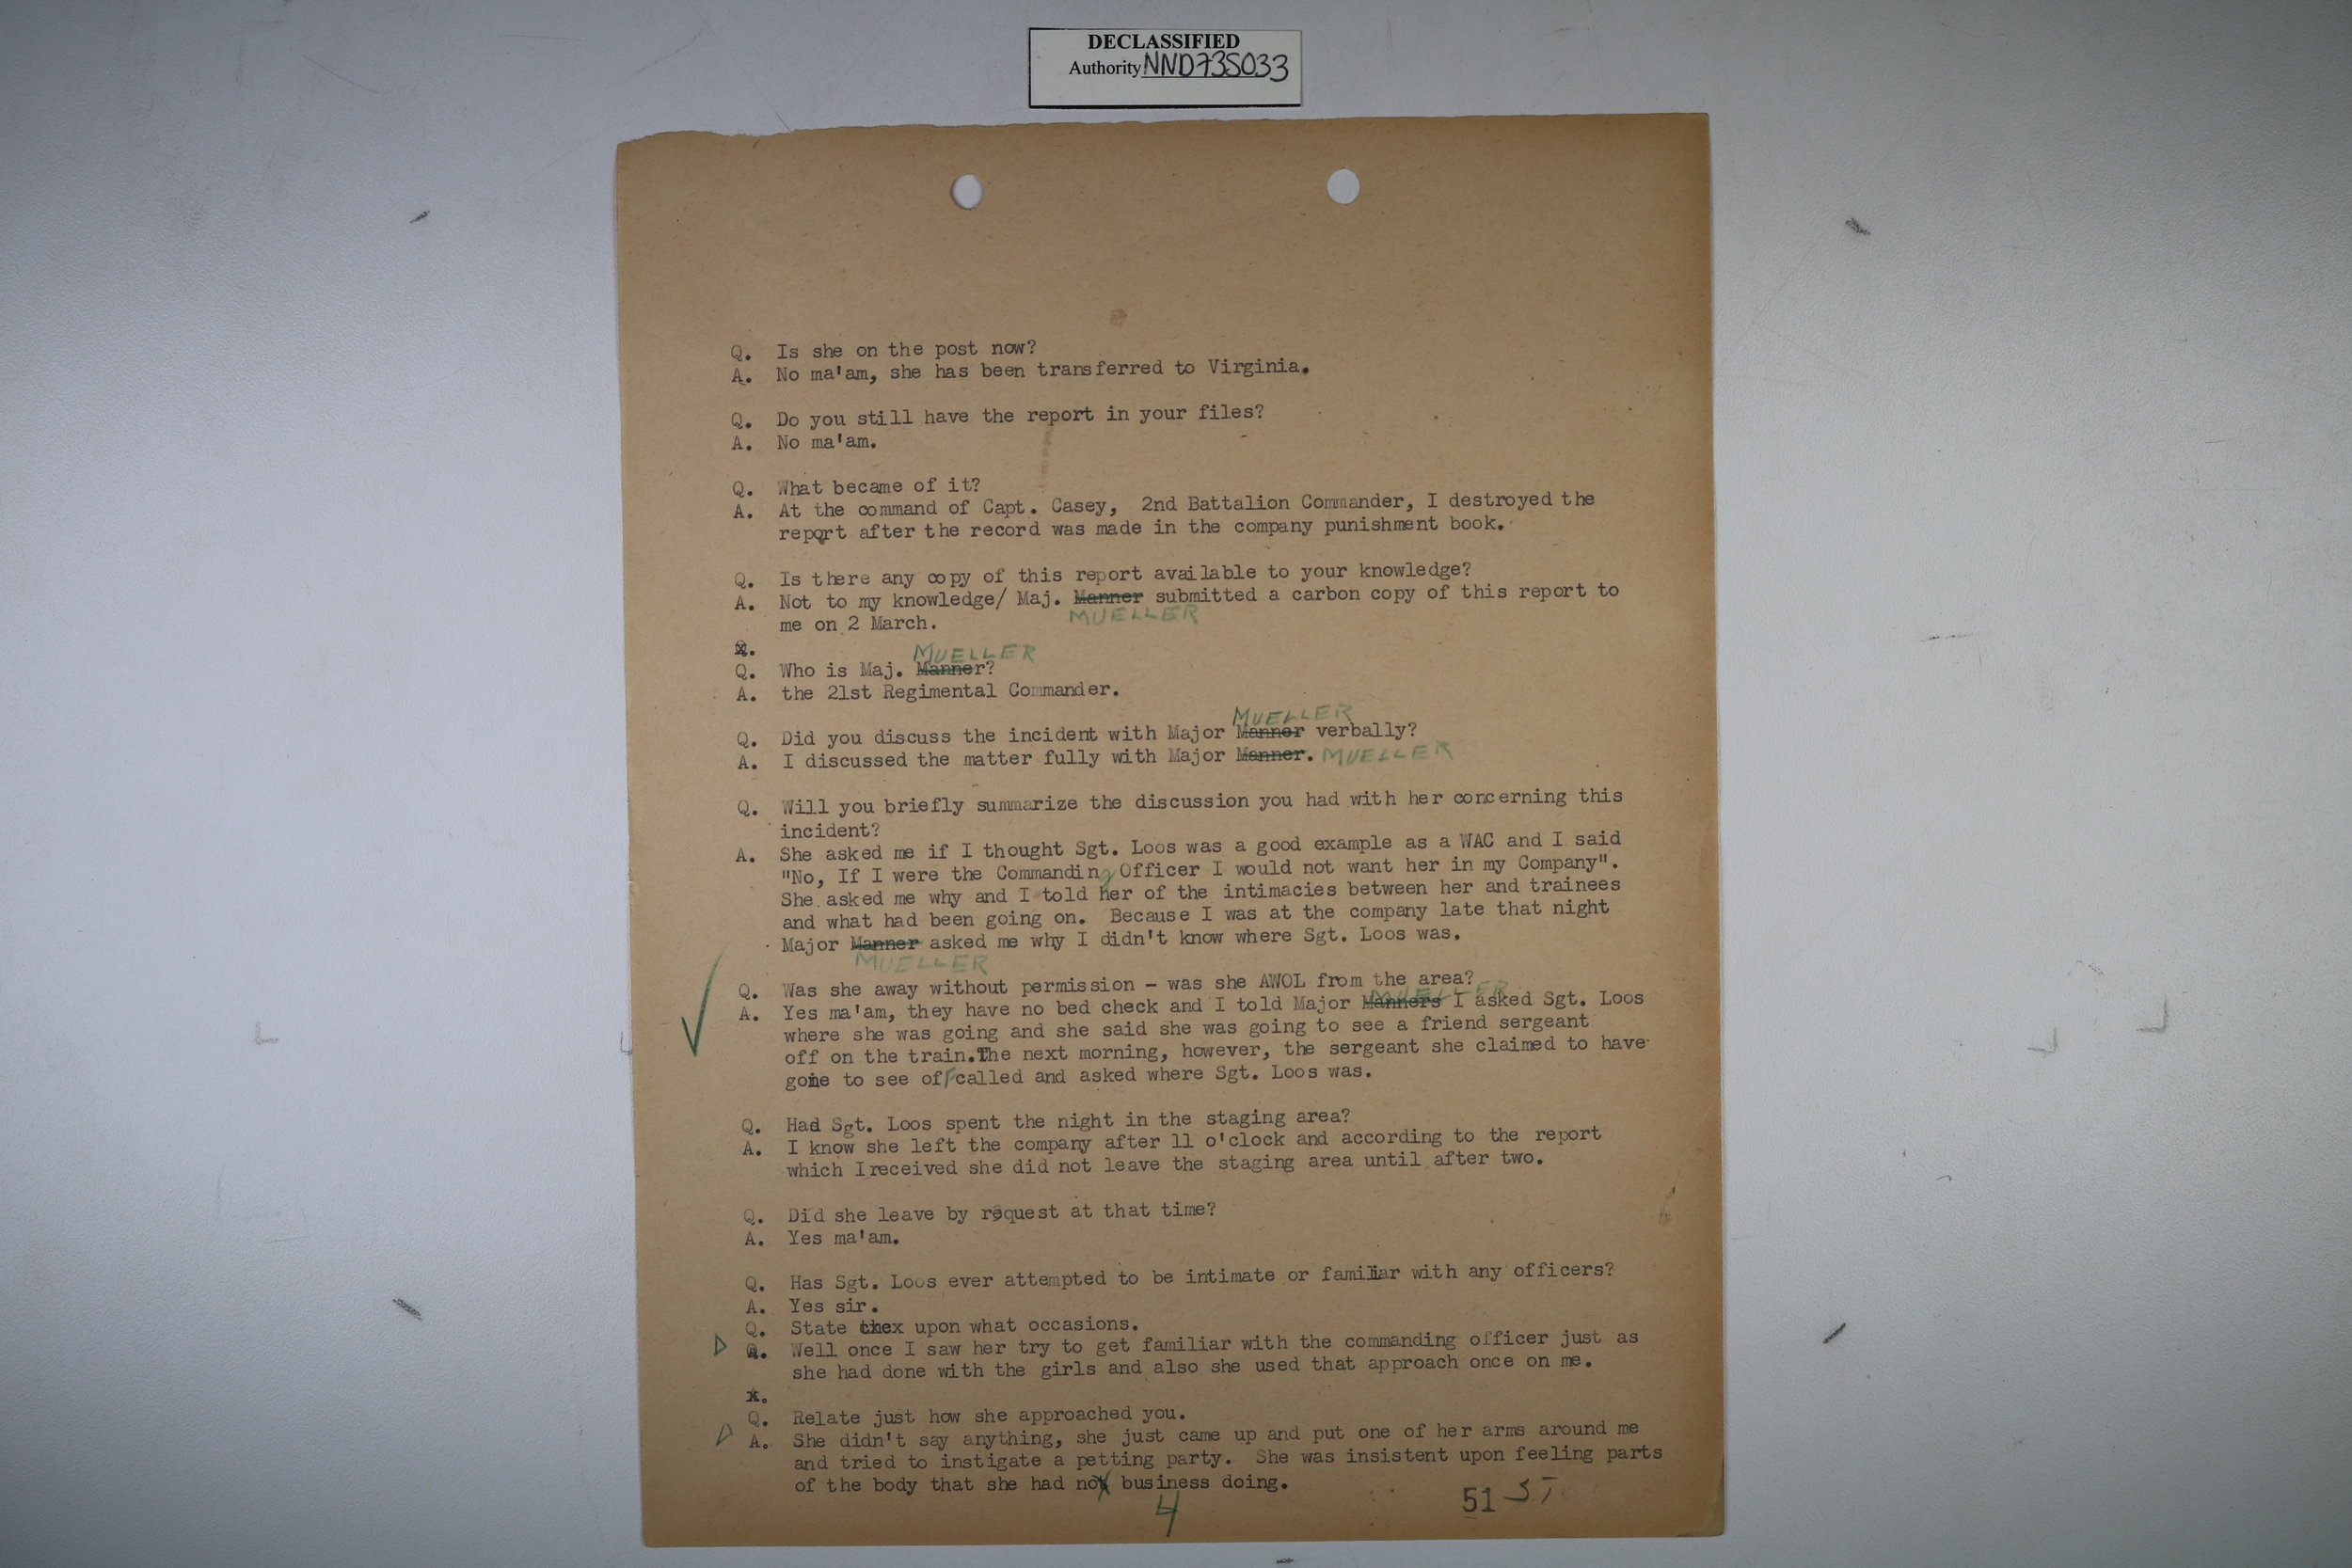 A page from the  Fort Oglethorpe Testimony : a secret trial conducted on women of the W.A.C. at Fort Oglethorpe, GA in 1945. This led to the imprisonment and discharge of a number of homosexual soldiers who were writing love letters.